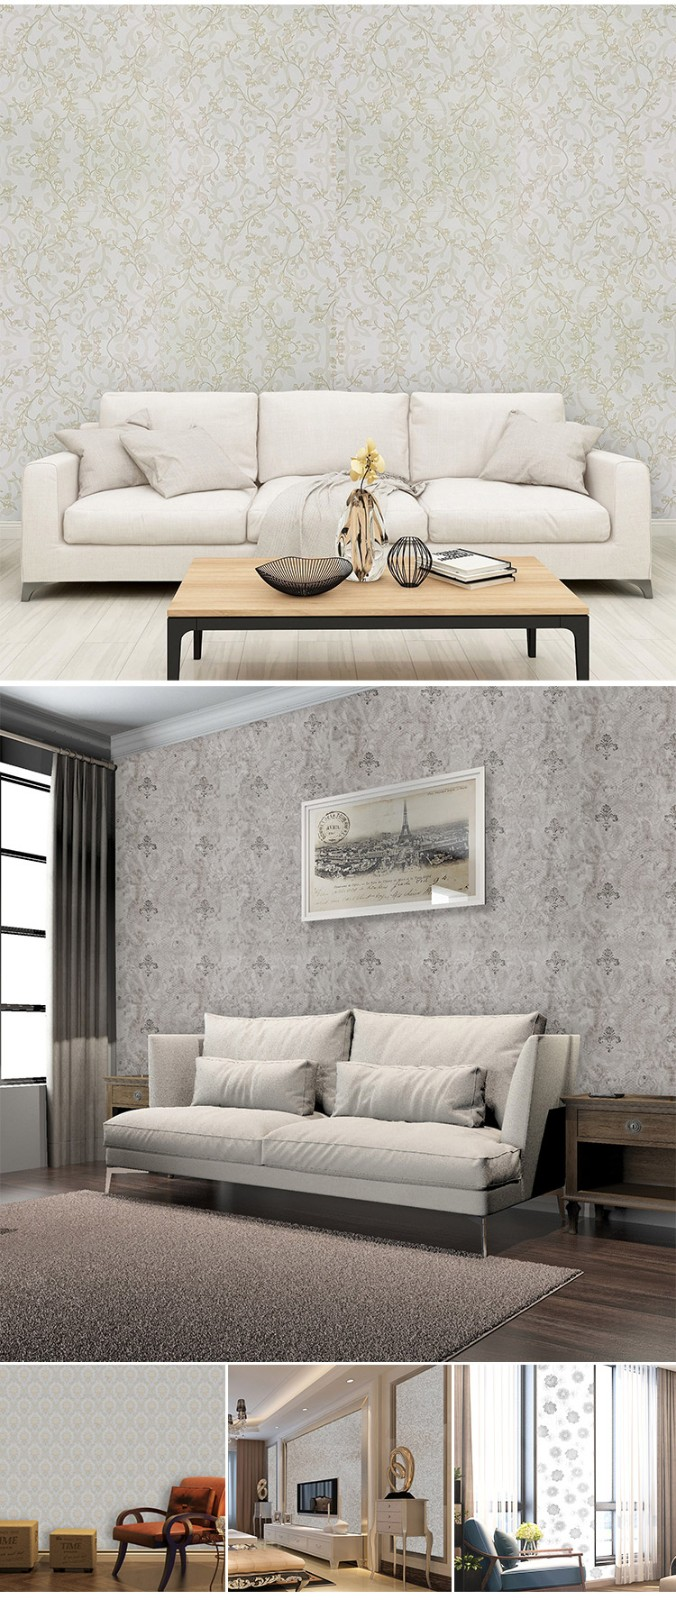 SUNYE best price home interior wallpaper inquire now for heating-6